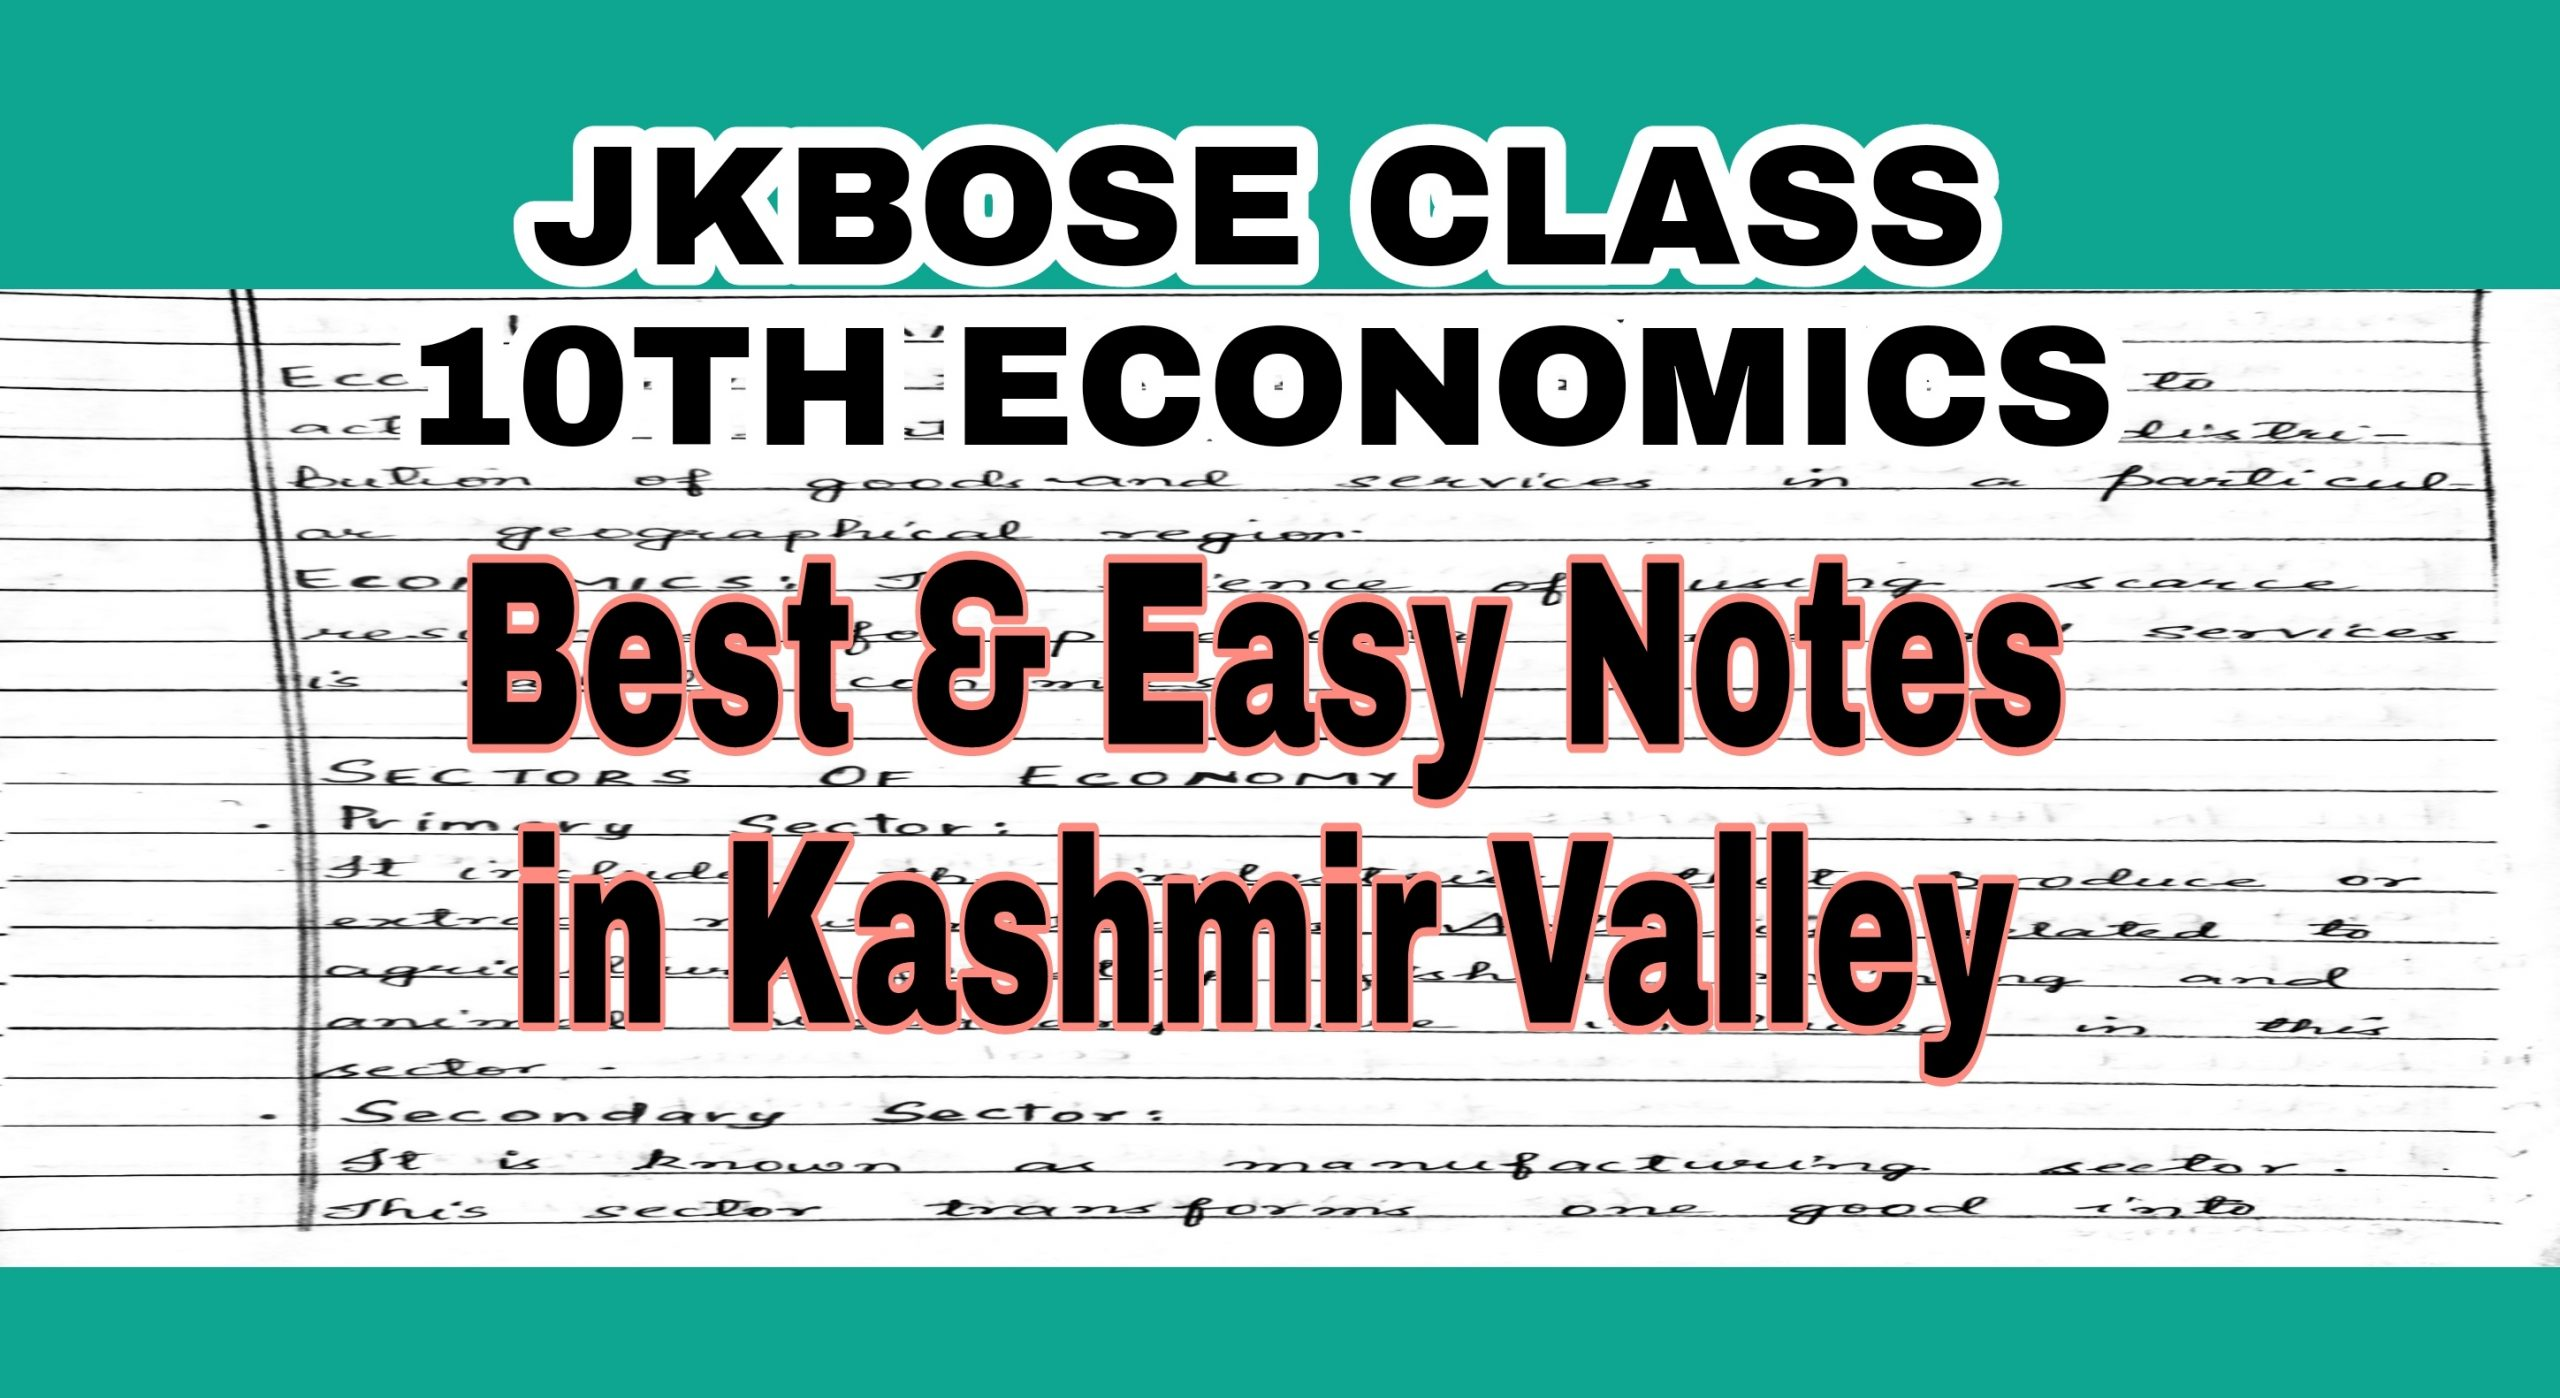 10th Class Economics notes JKBOSE NCERT Download Latest Syllabus 2021